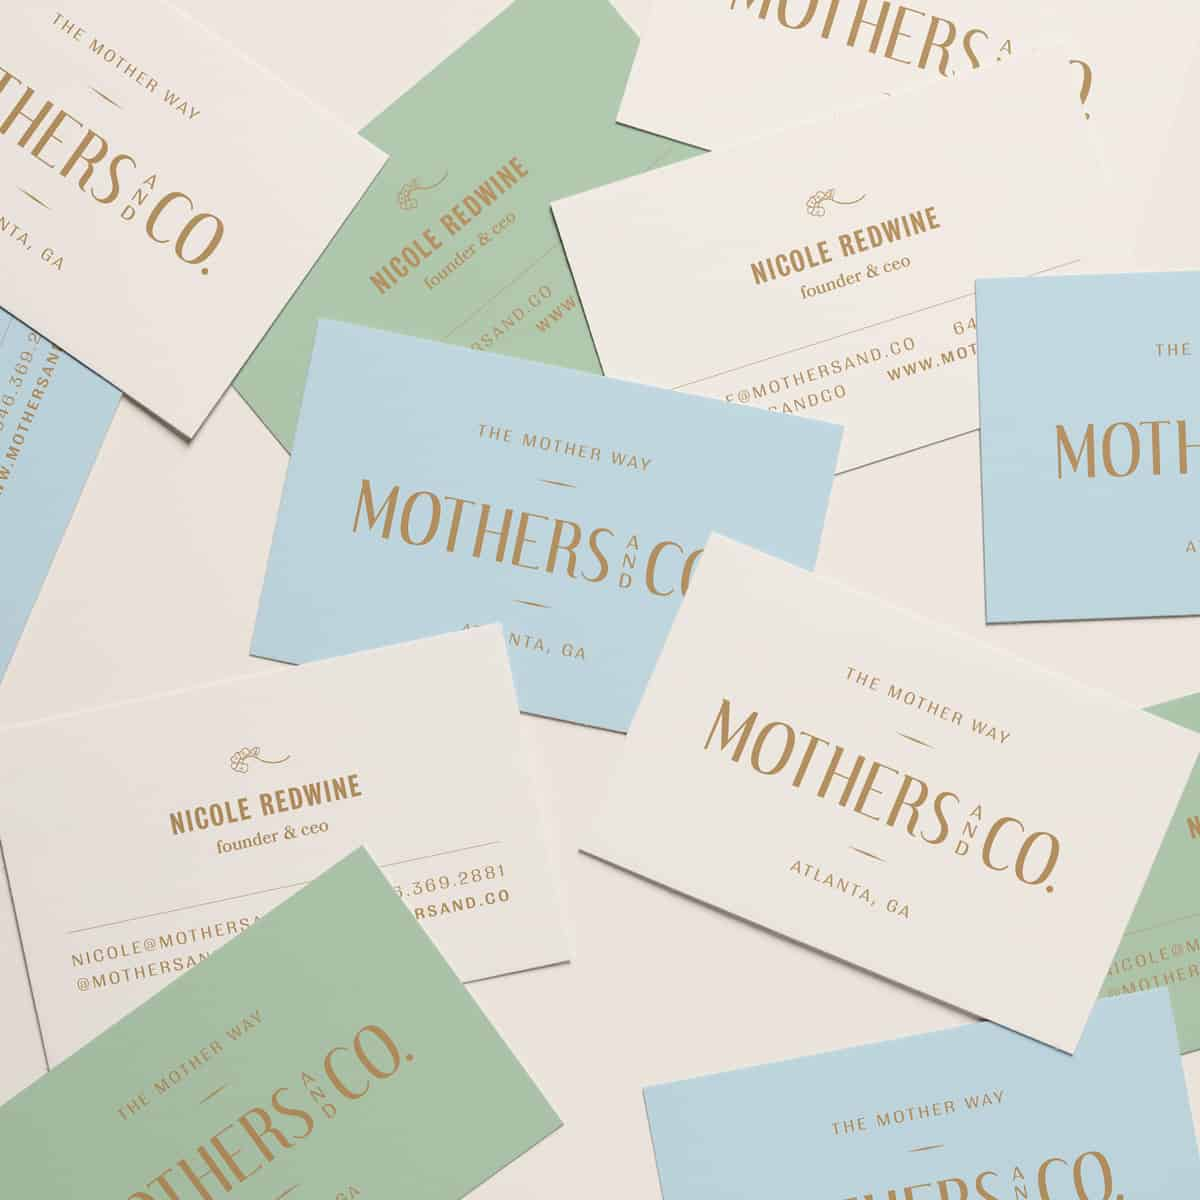 Mothers & Co.